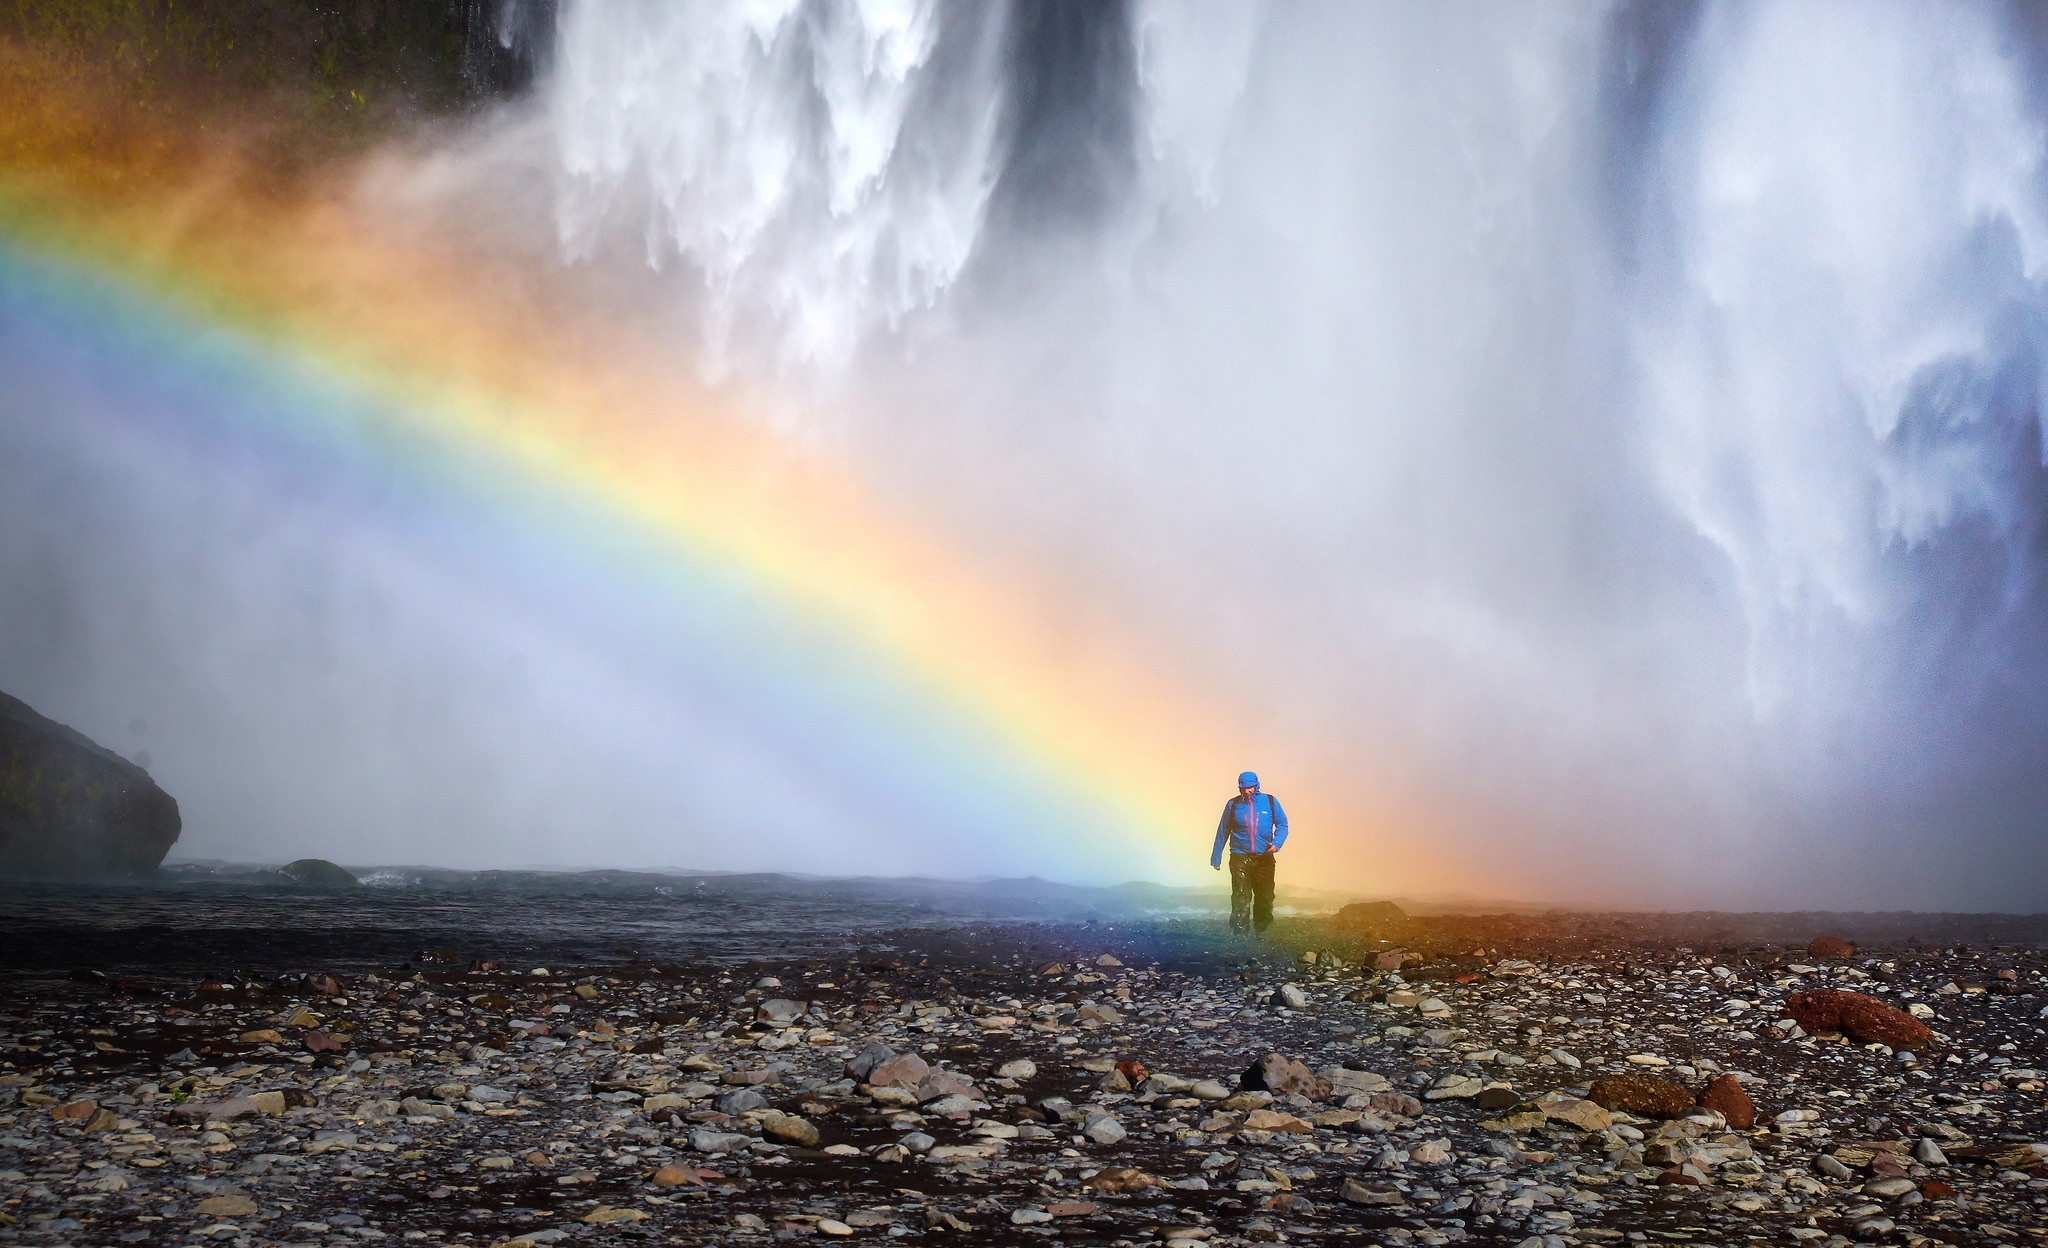 Iceland's stunning tourism growth offers a window into the future of destination management